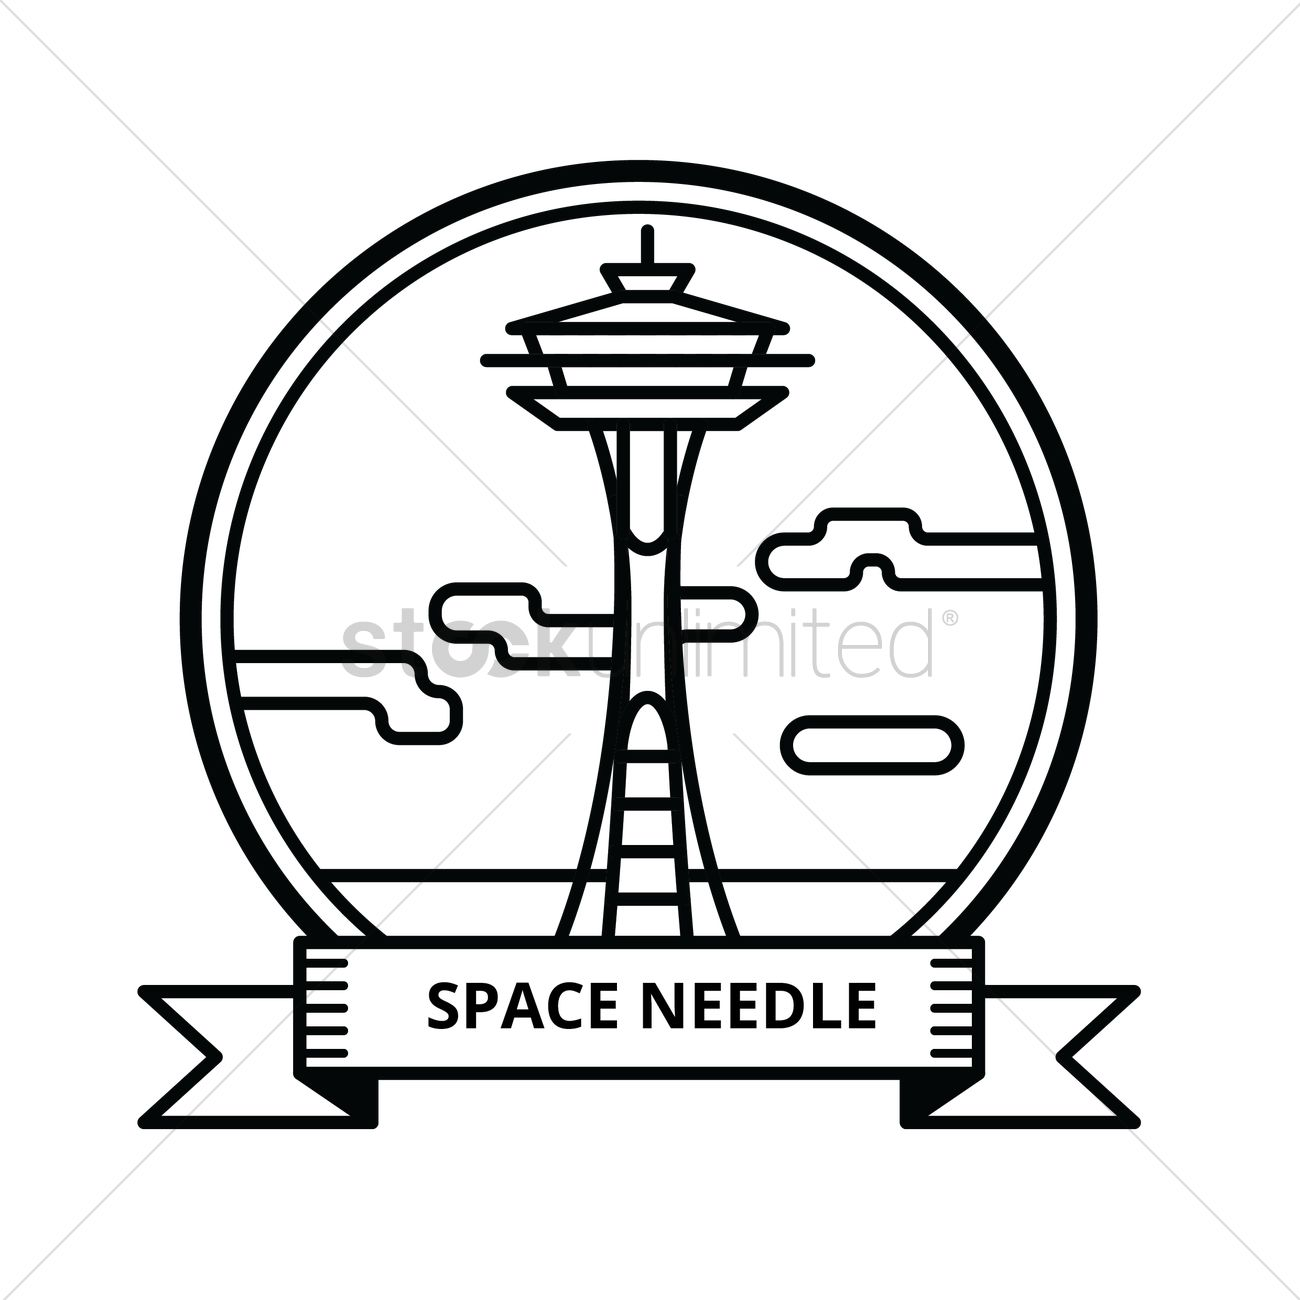 coloring pages space needle - photo#25